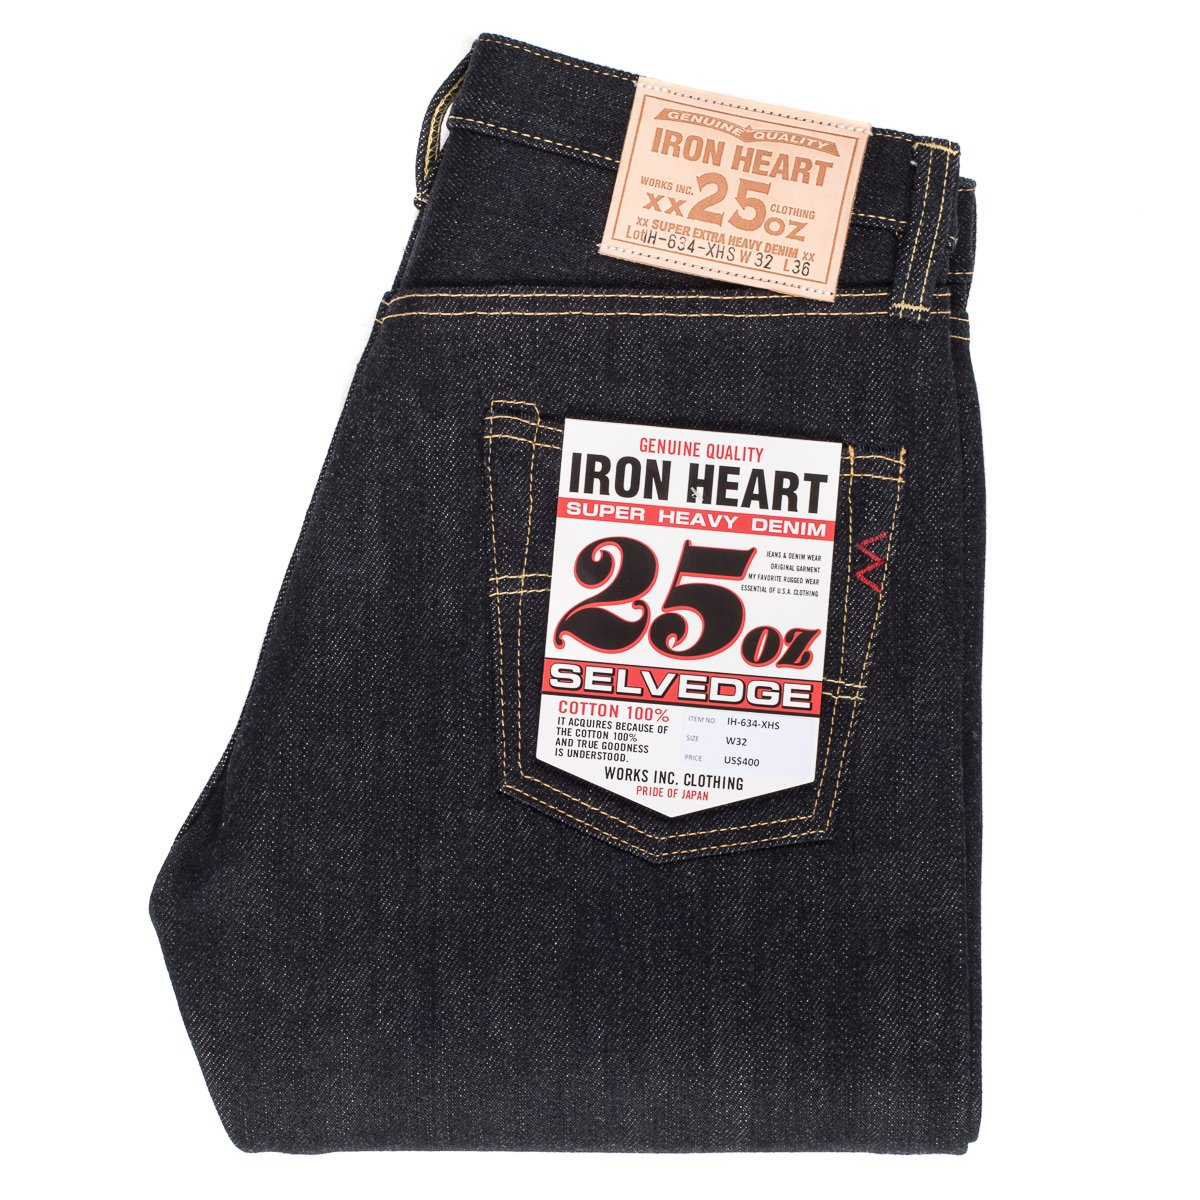 0015e6249a0 Jeans - Raw Denim and Selvedge Jeans Online - Brund.dk